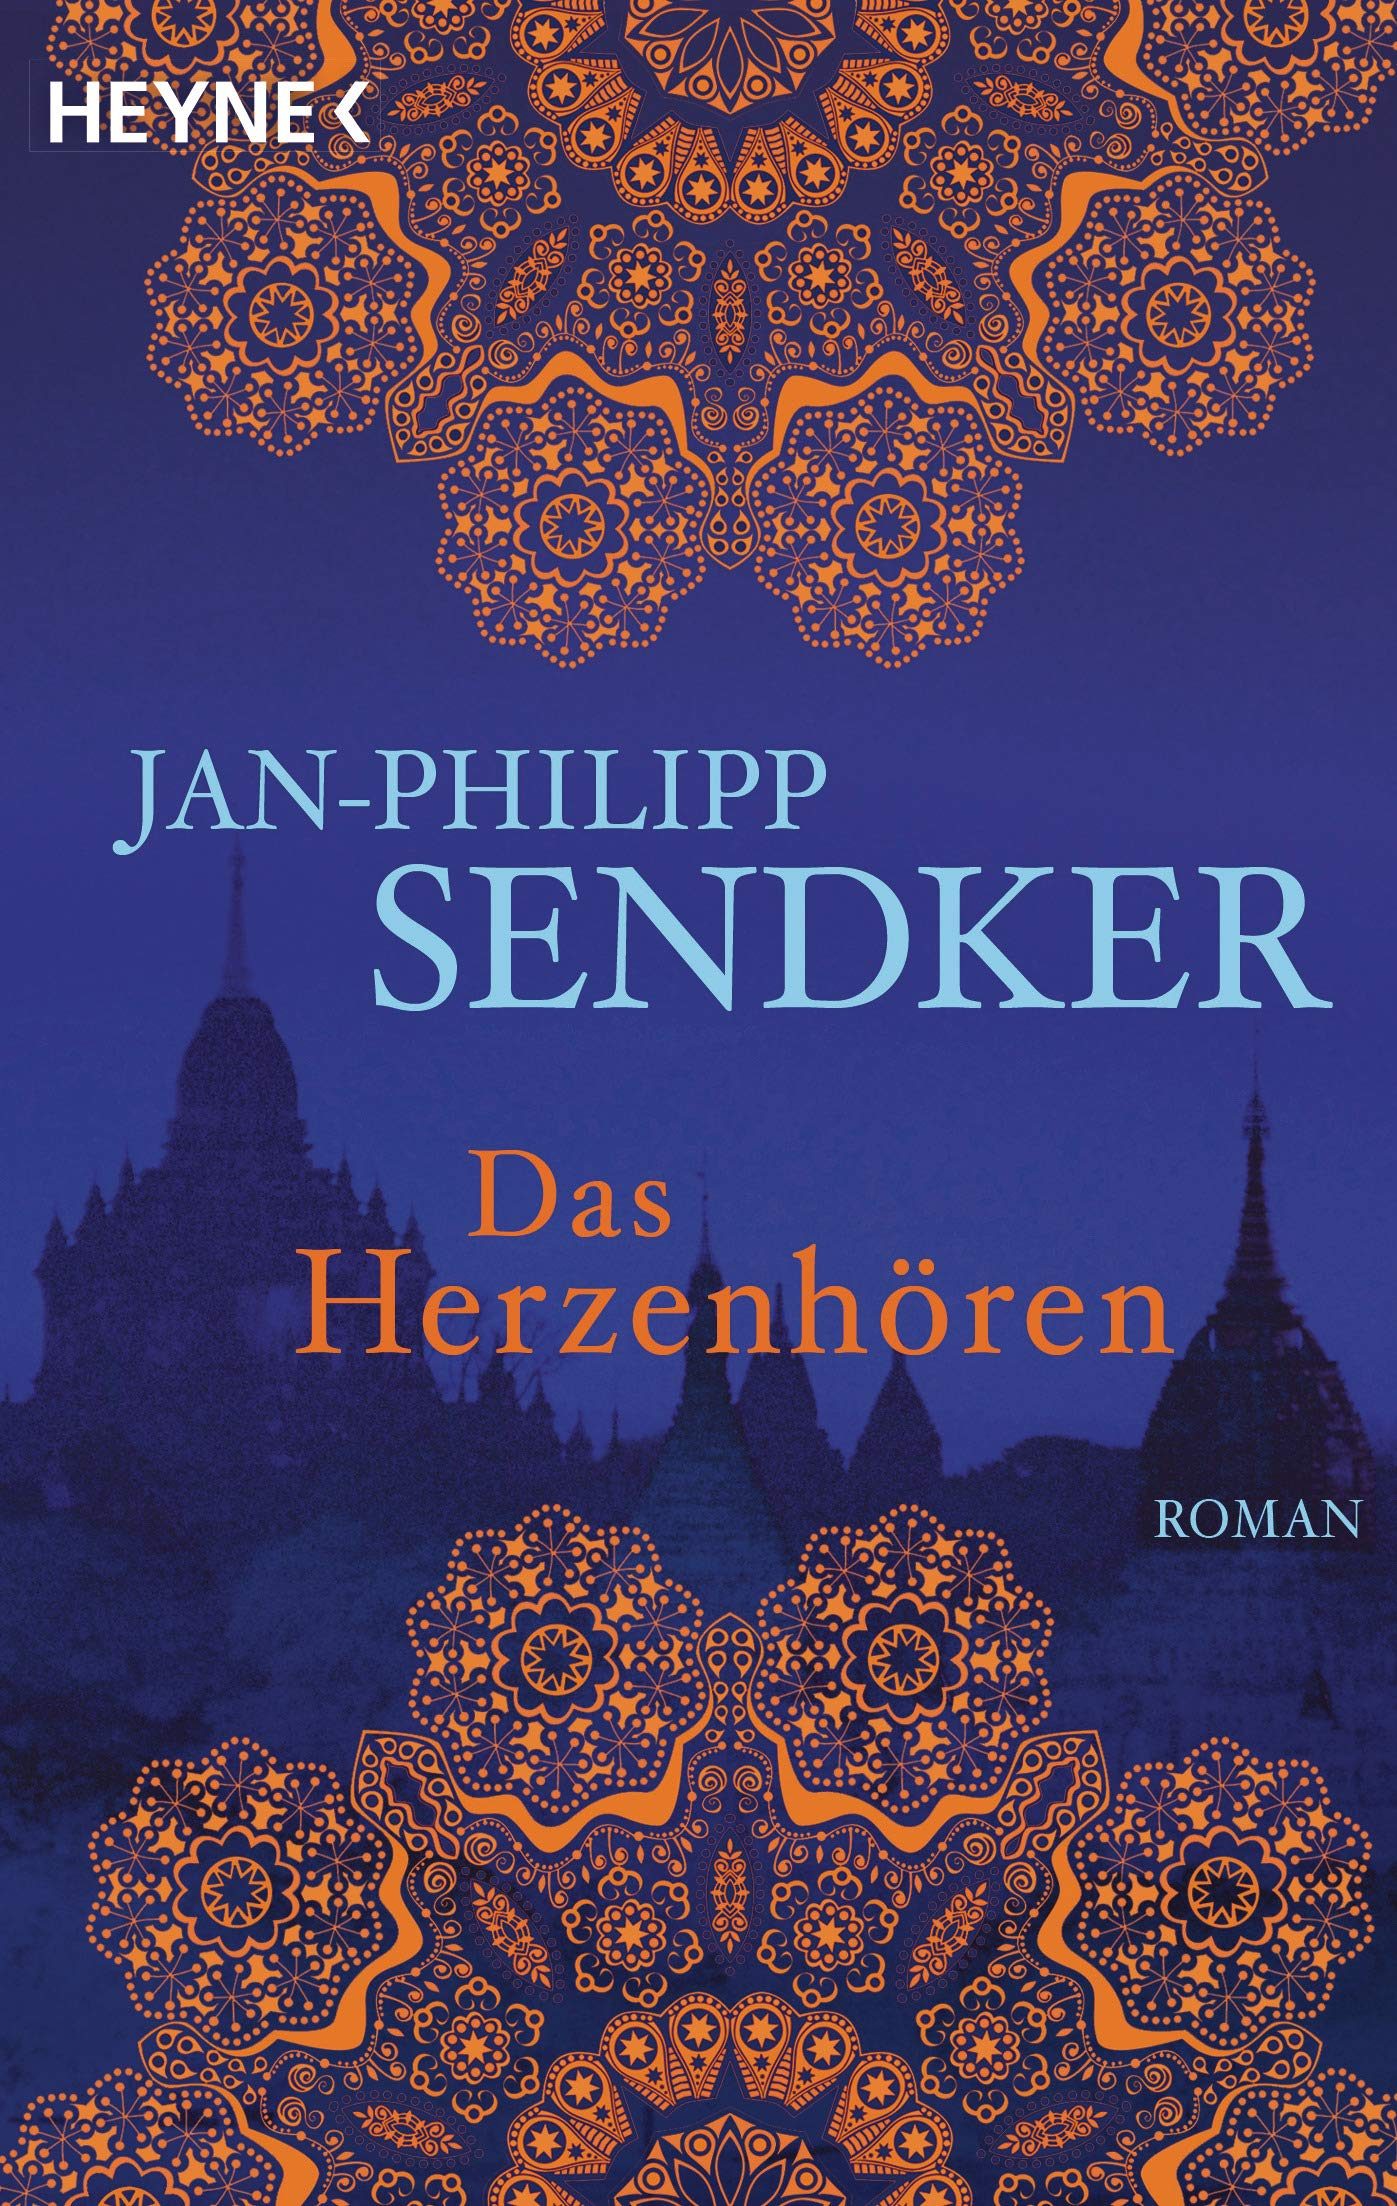 https://juliassammelsurium.blogspot.com/2019/07/rezension-das-herzenhoren-jan-philipp.html